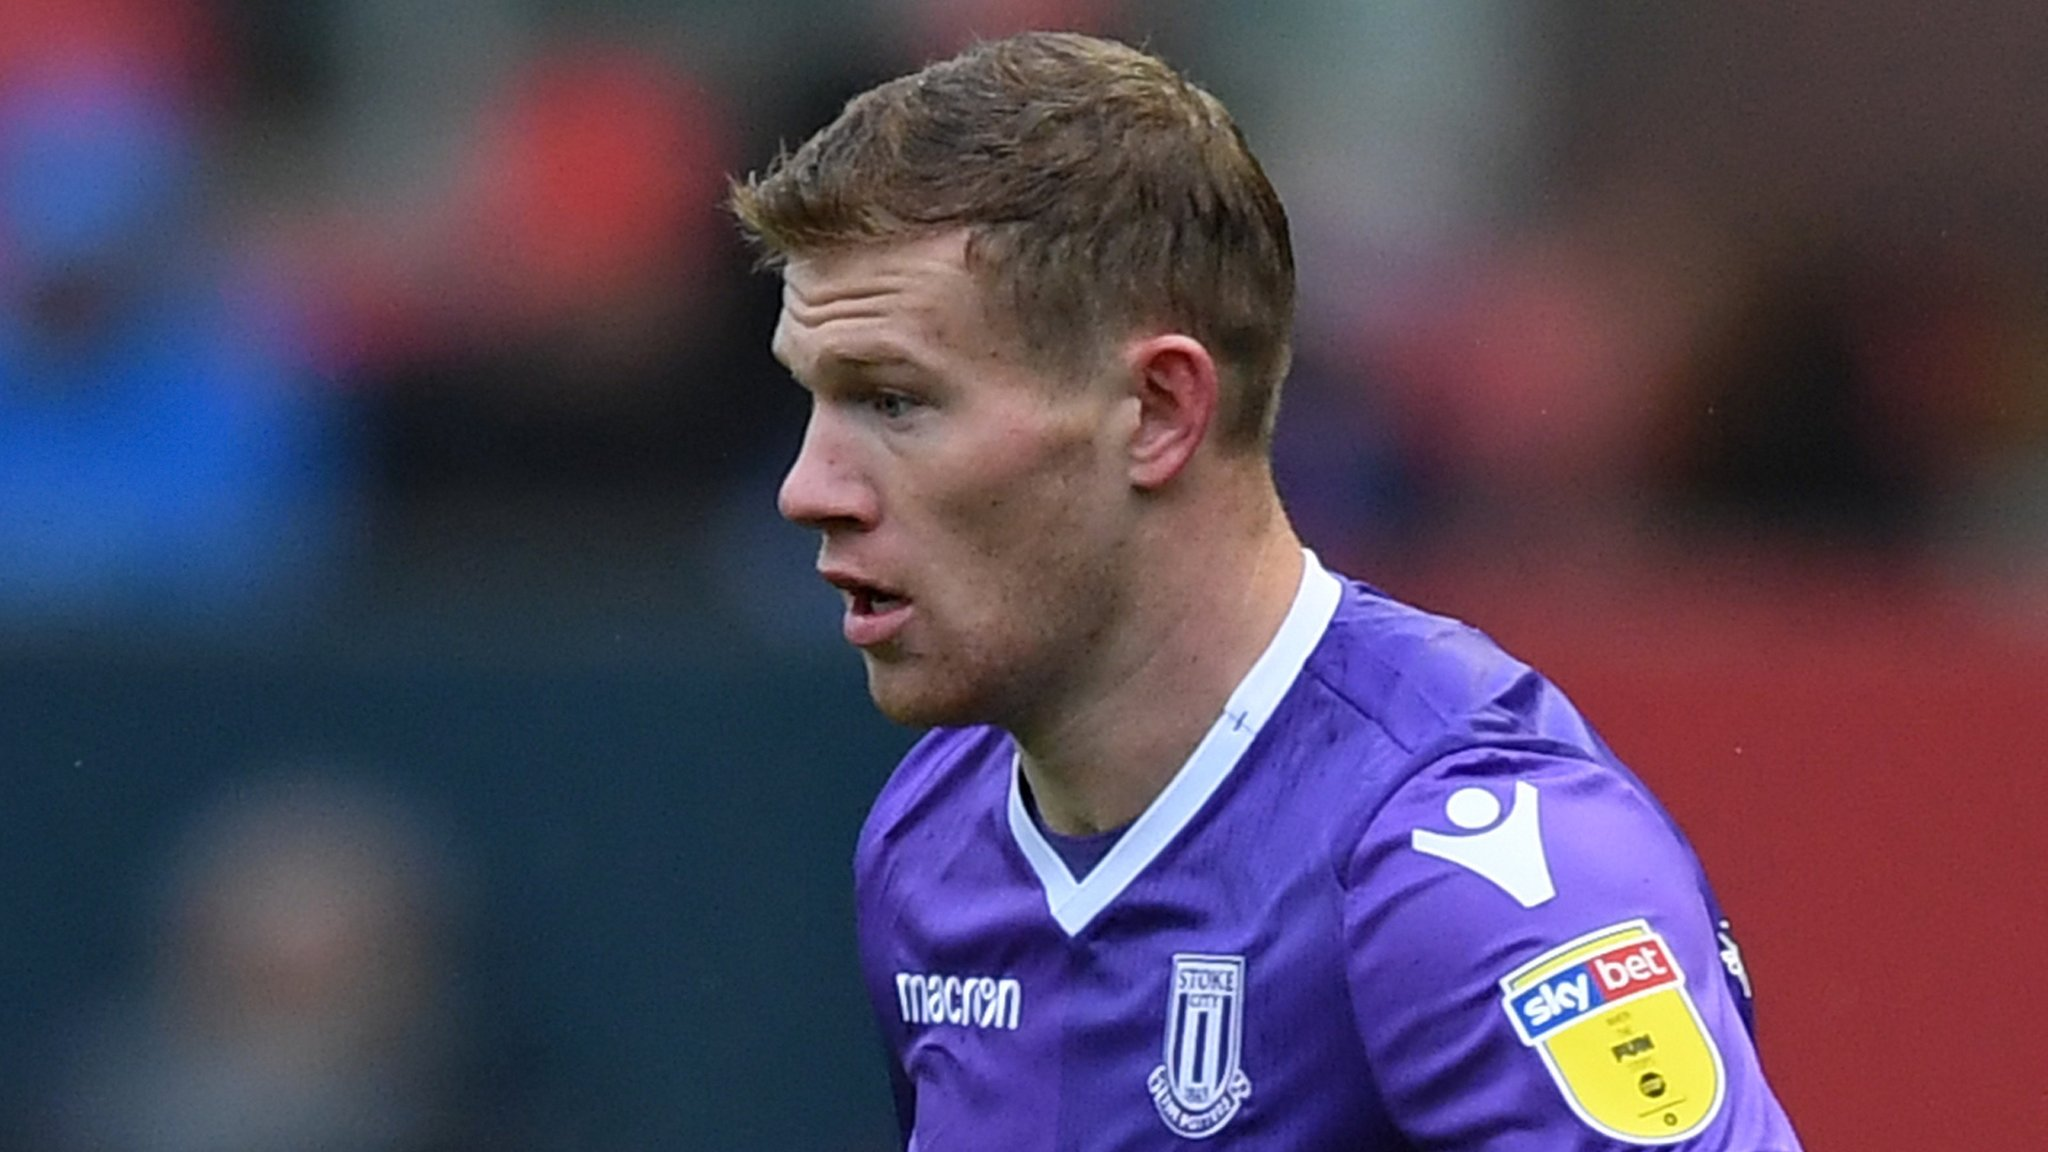 James McClean: Stoke City forward sent abusive packages in poppy row